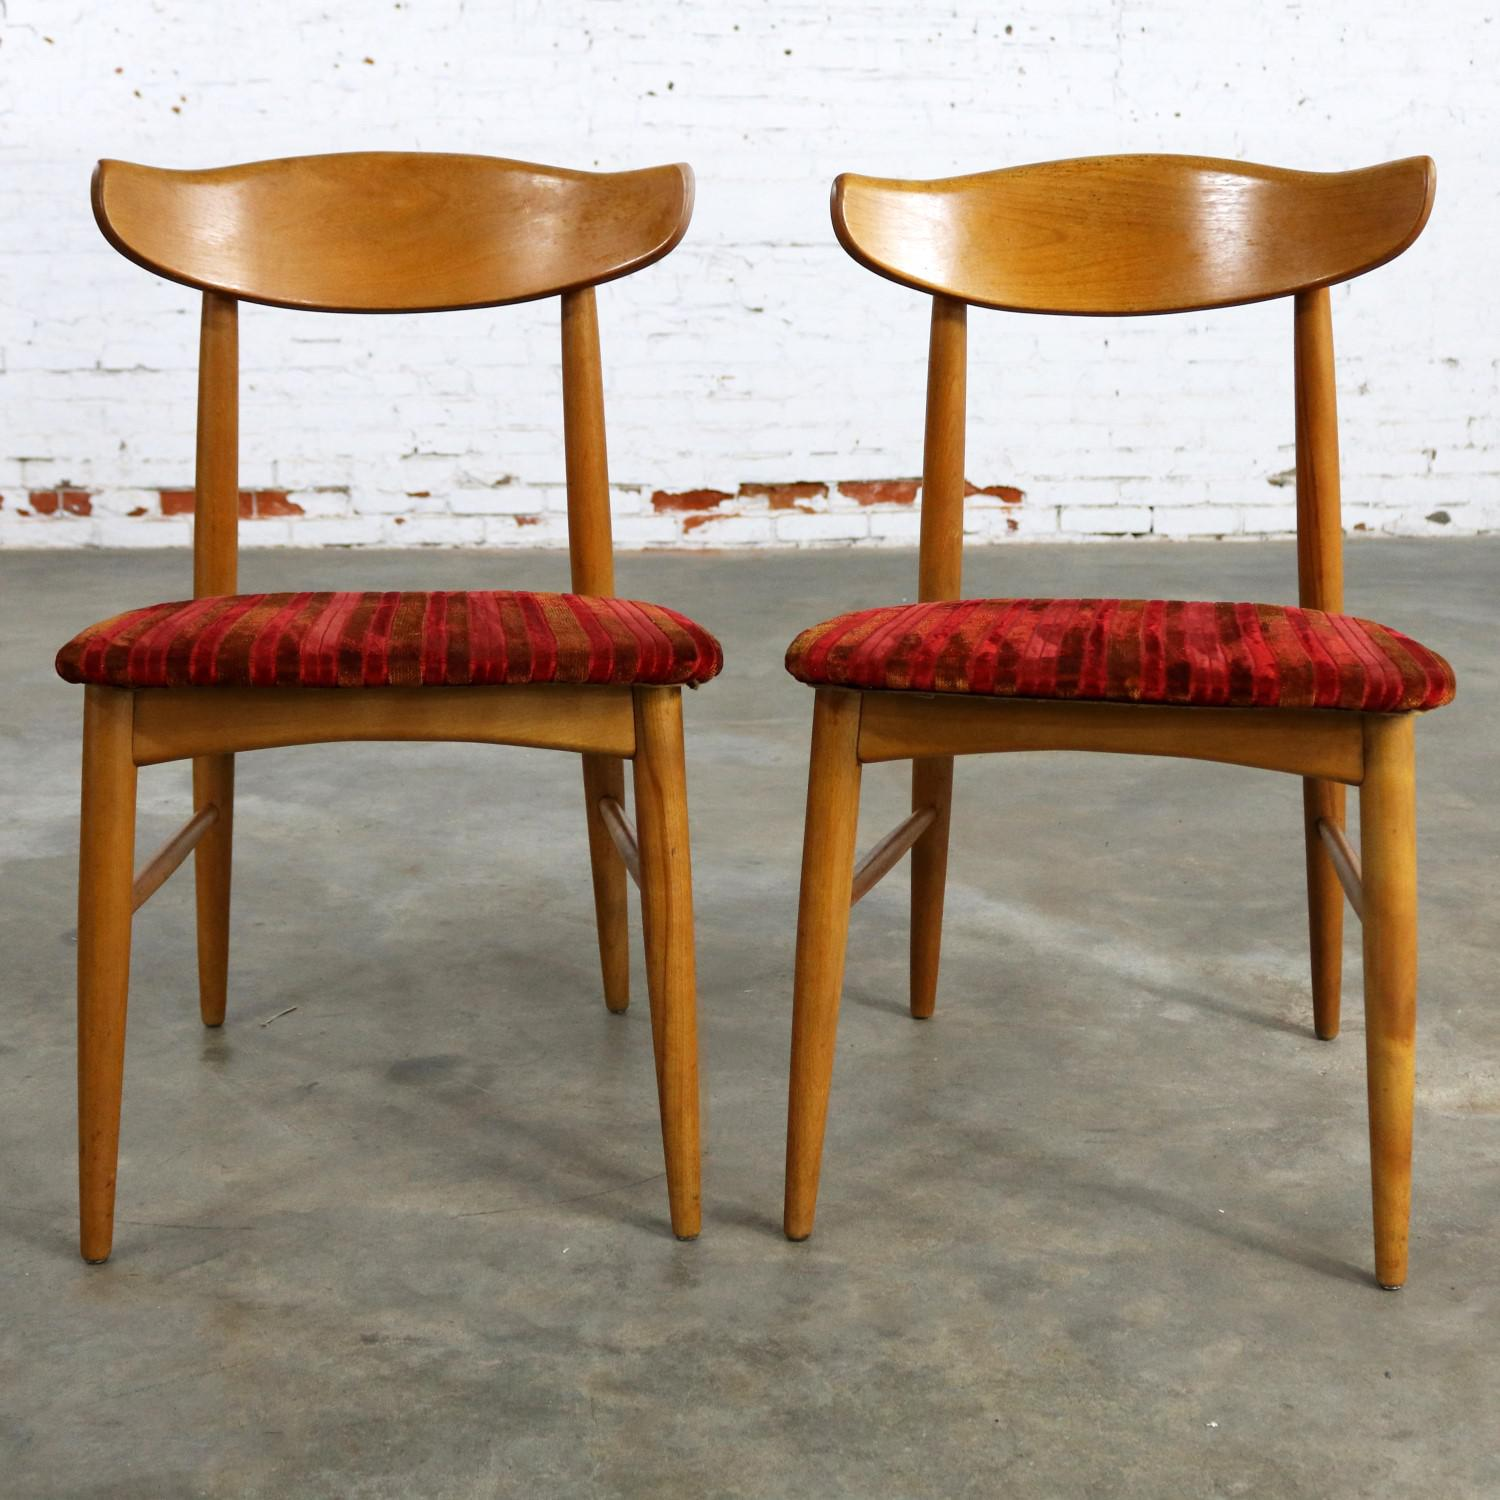 Striking Pair Of Mid Century Modern Side Chairs From The Birchcraft  Collection By Baumritter And